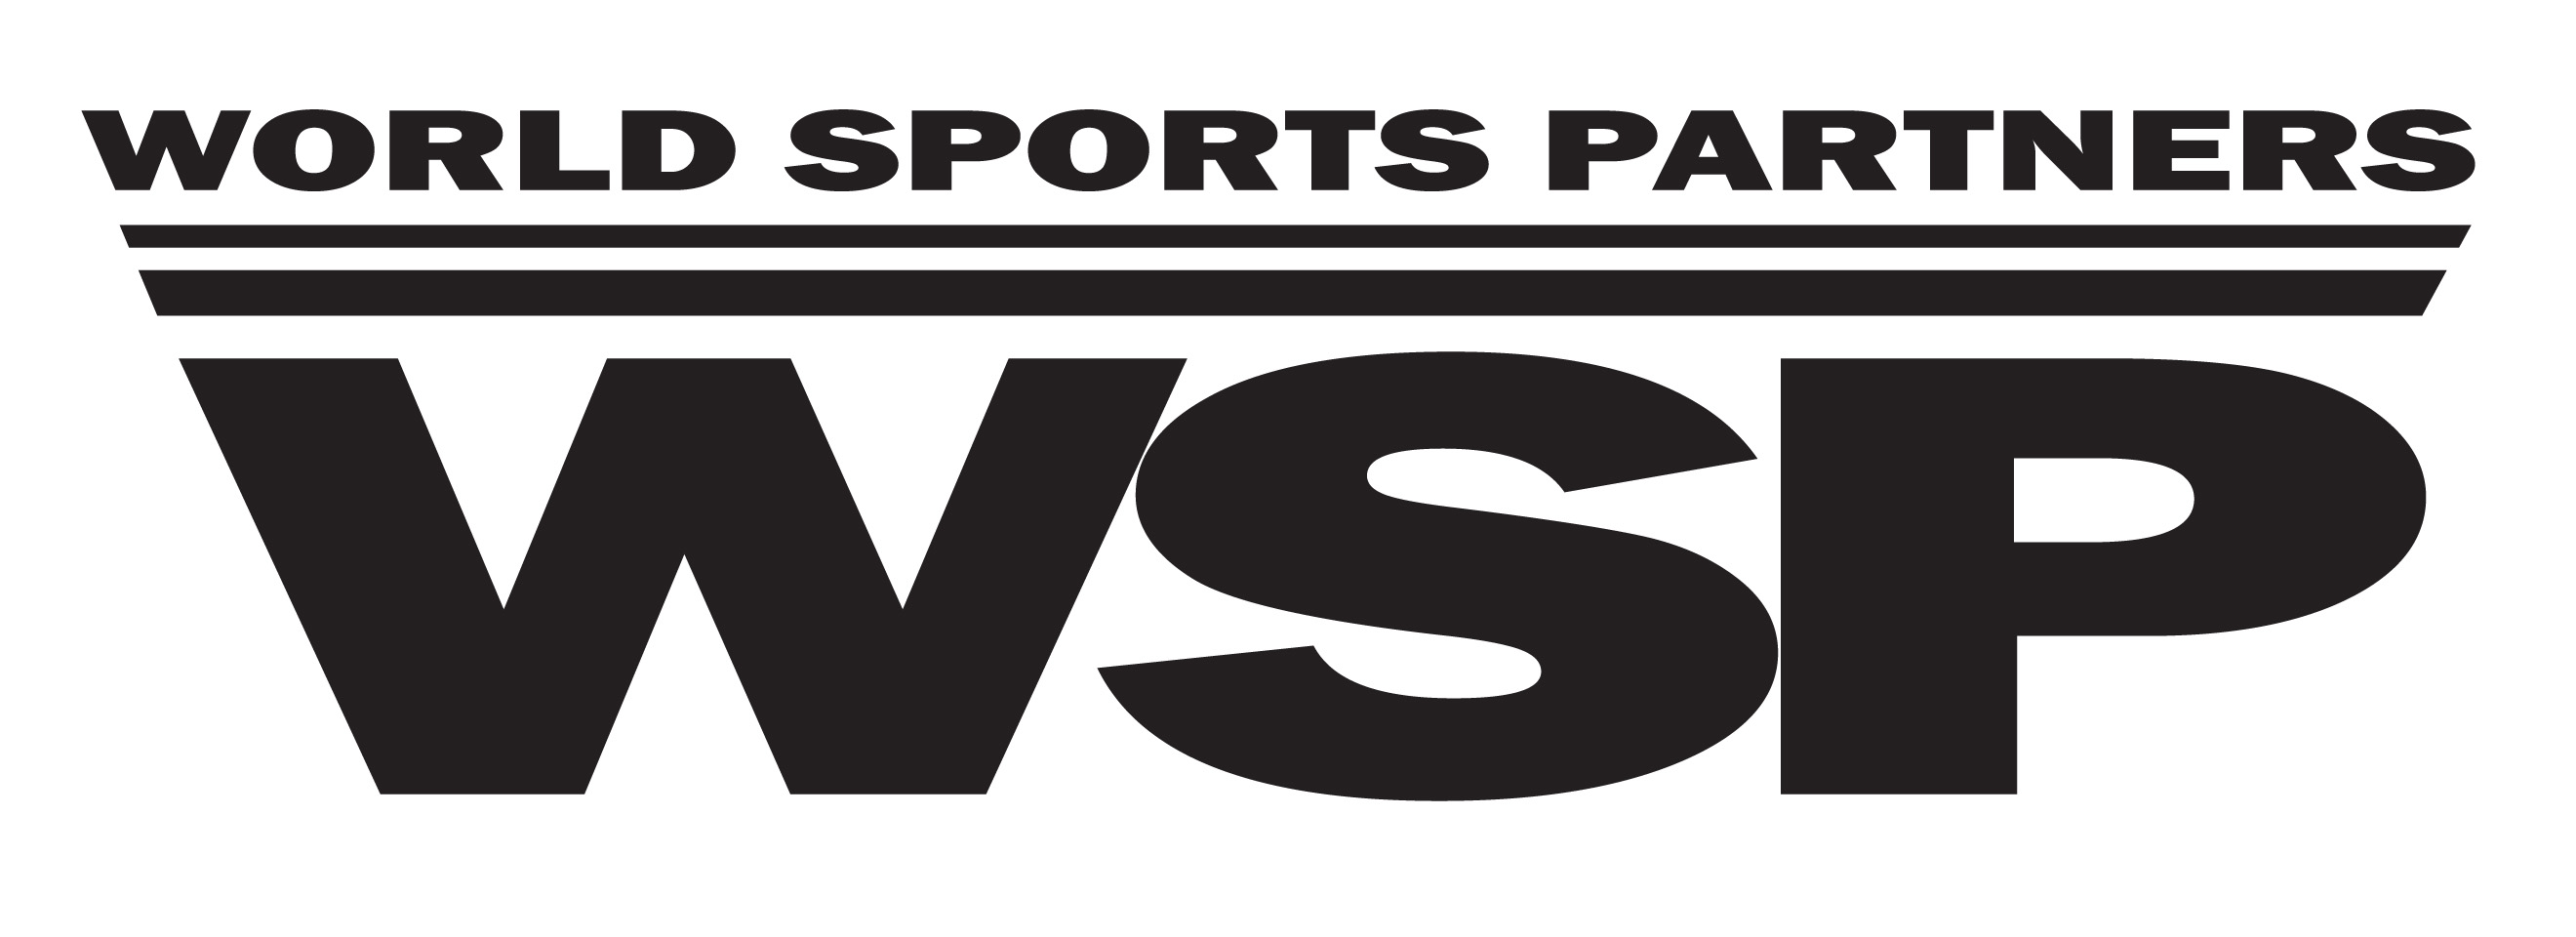 World Sports Partners